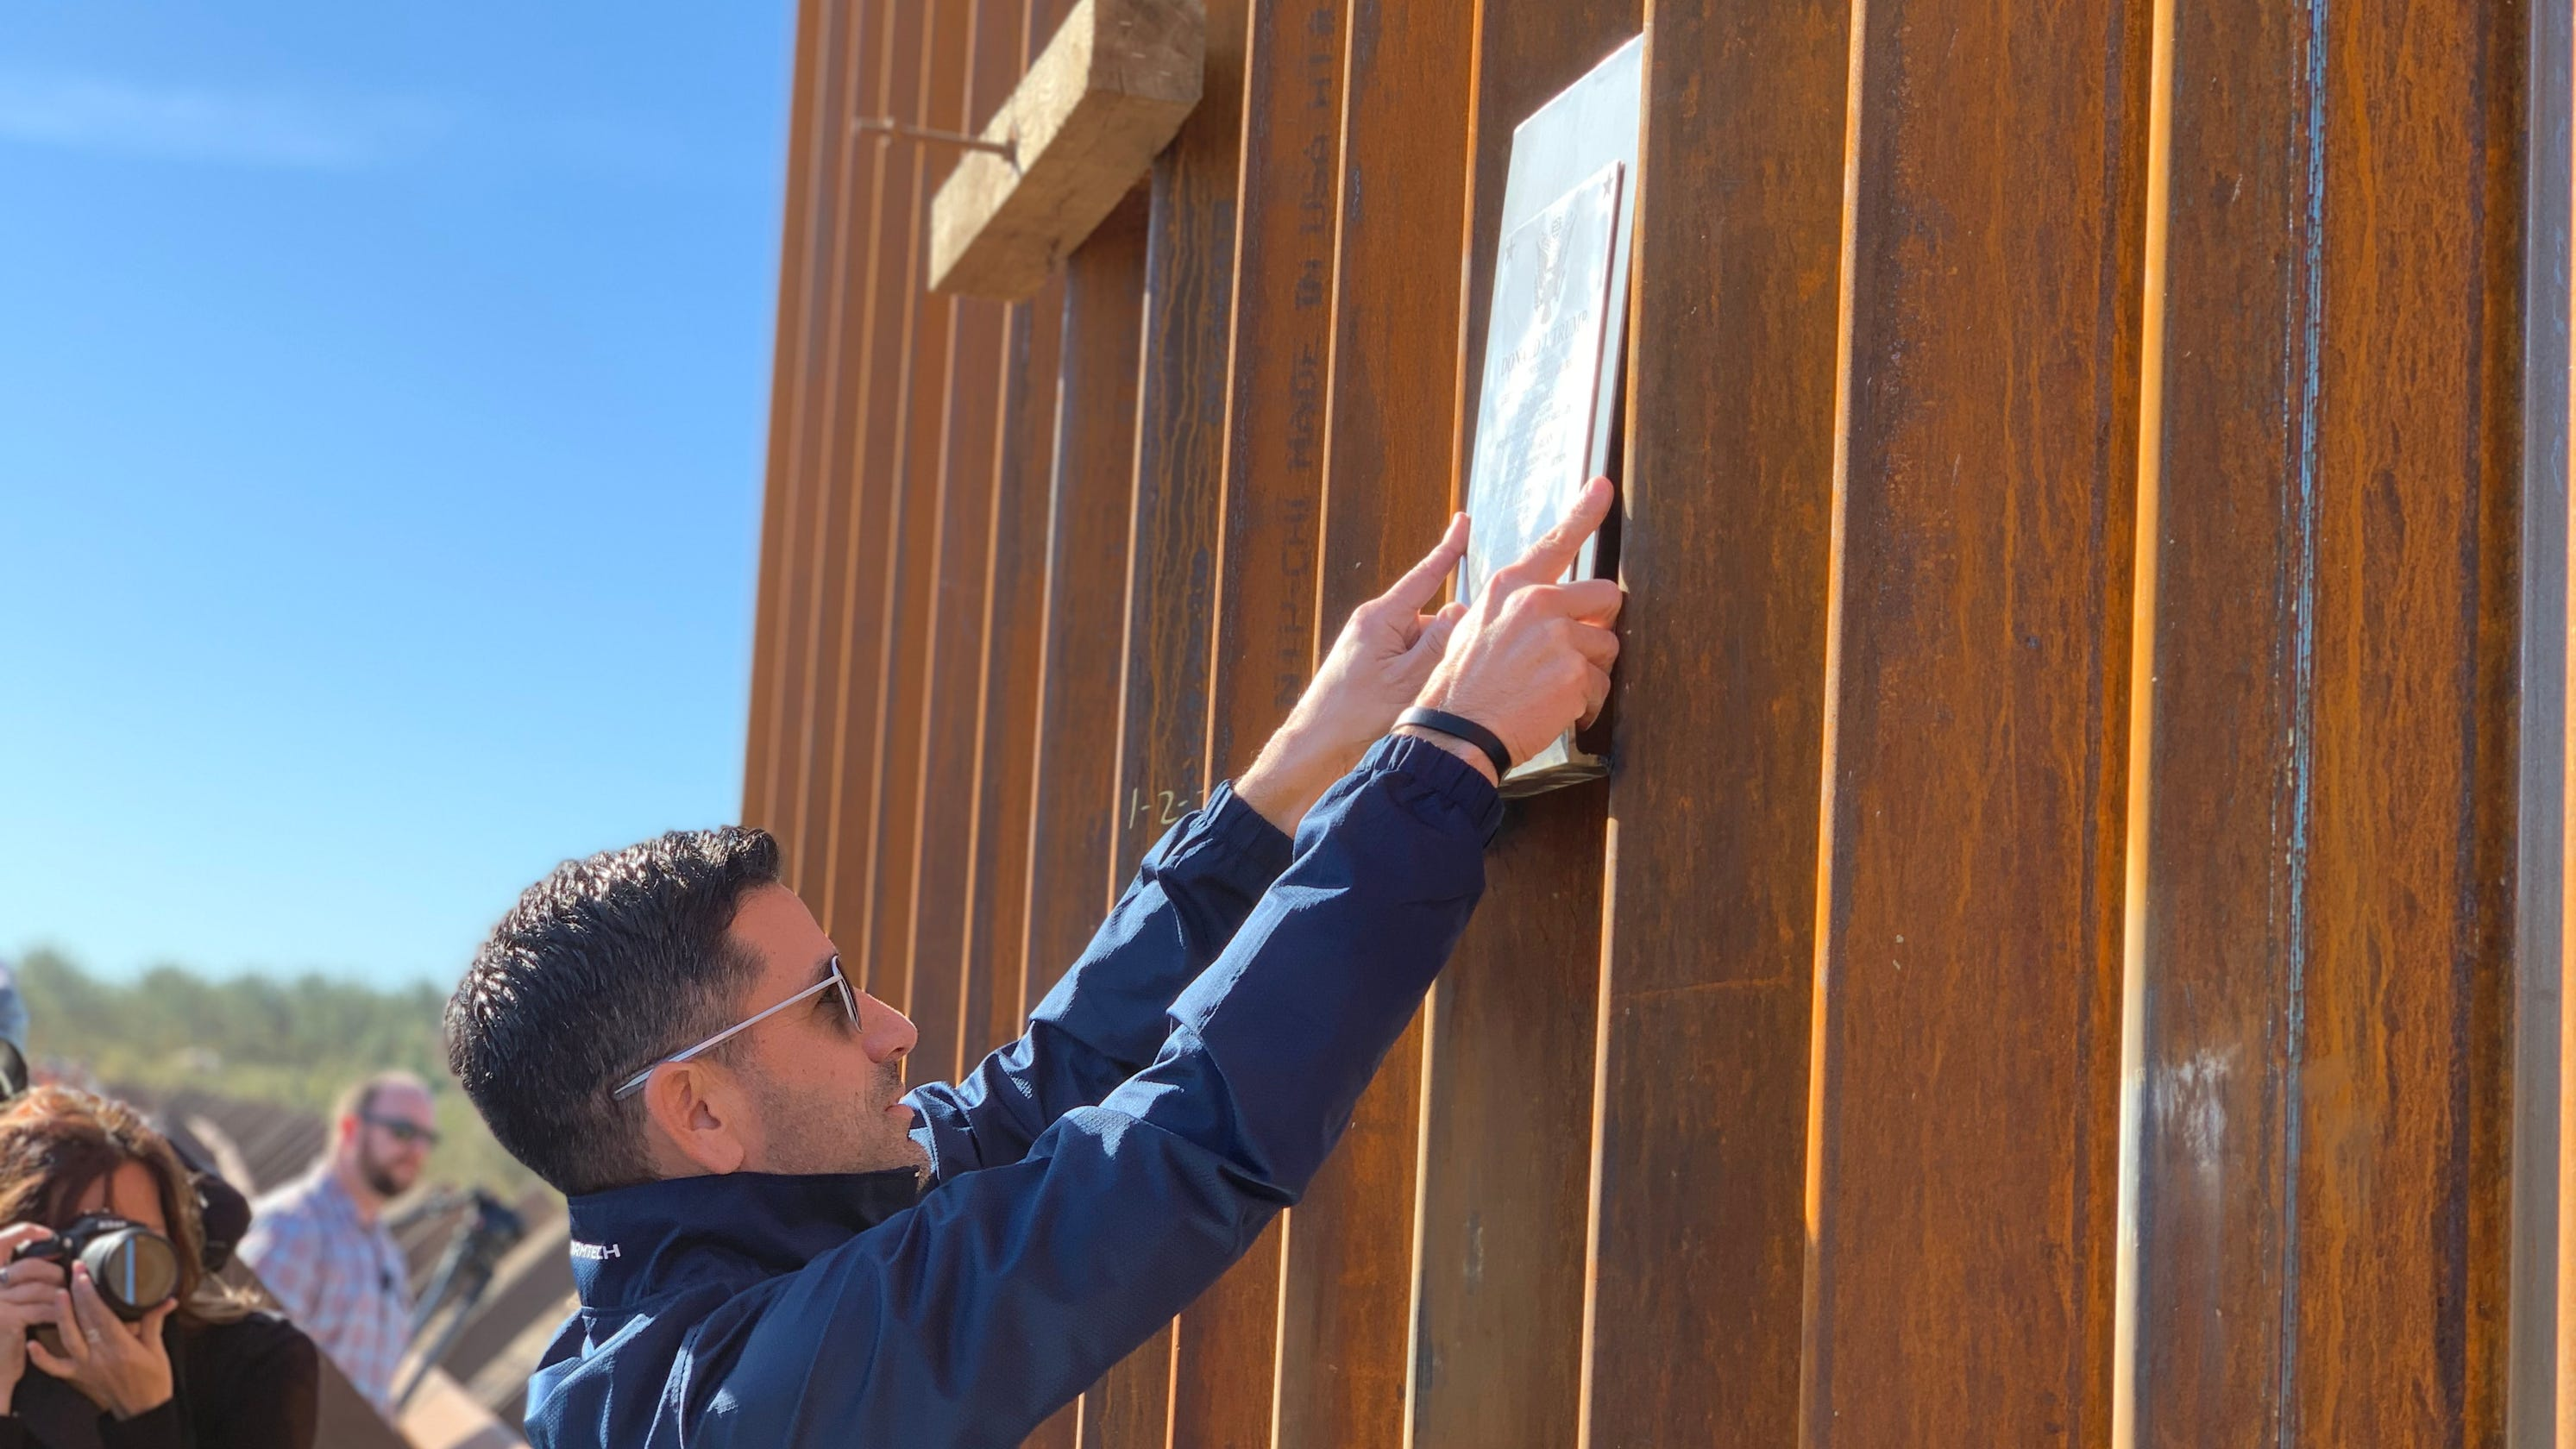 Homeland Security chief marks completion of 100 miles of 'new border wall' with plaque